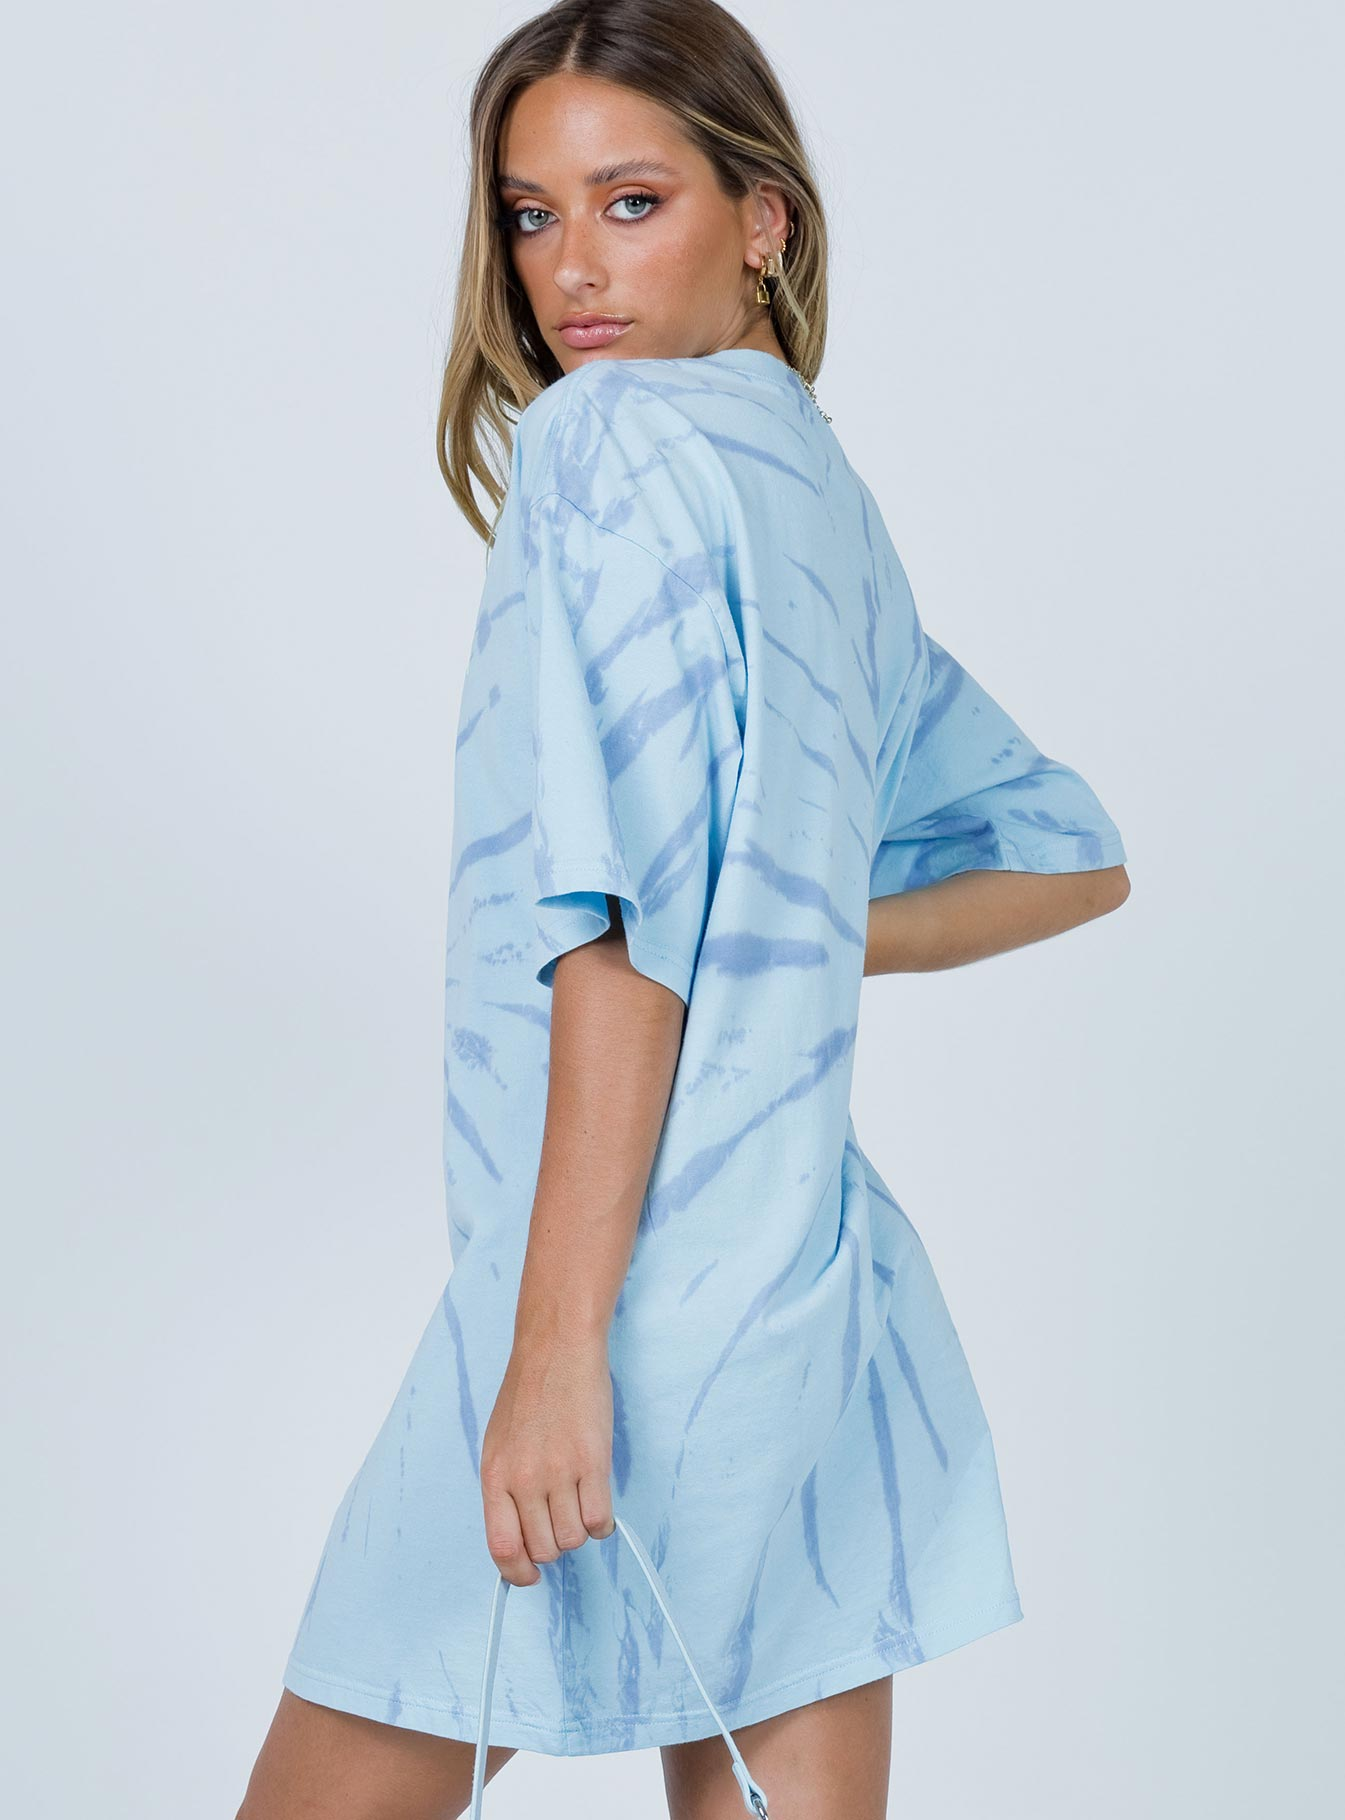 Vacation Mood Blue Tie-Dye Tee Dress